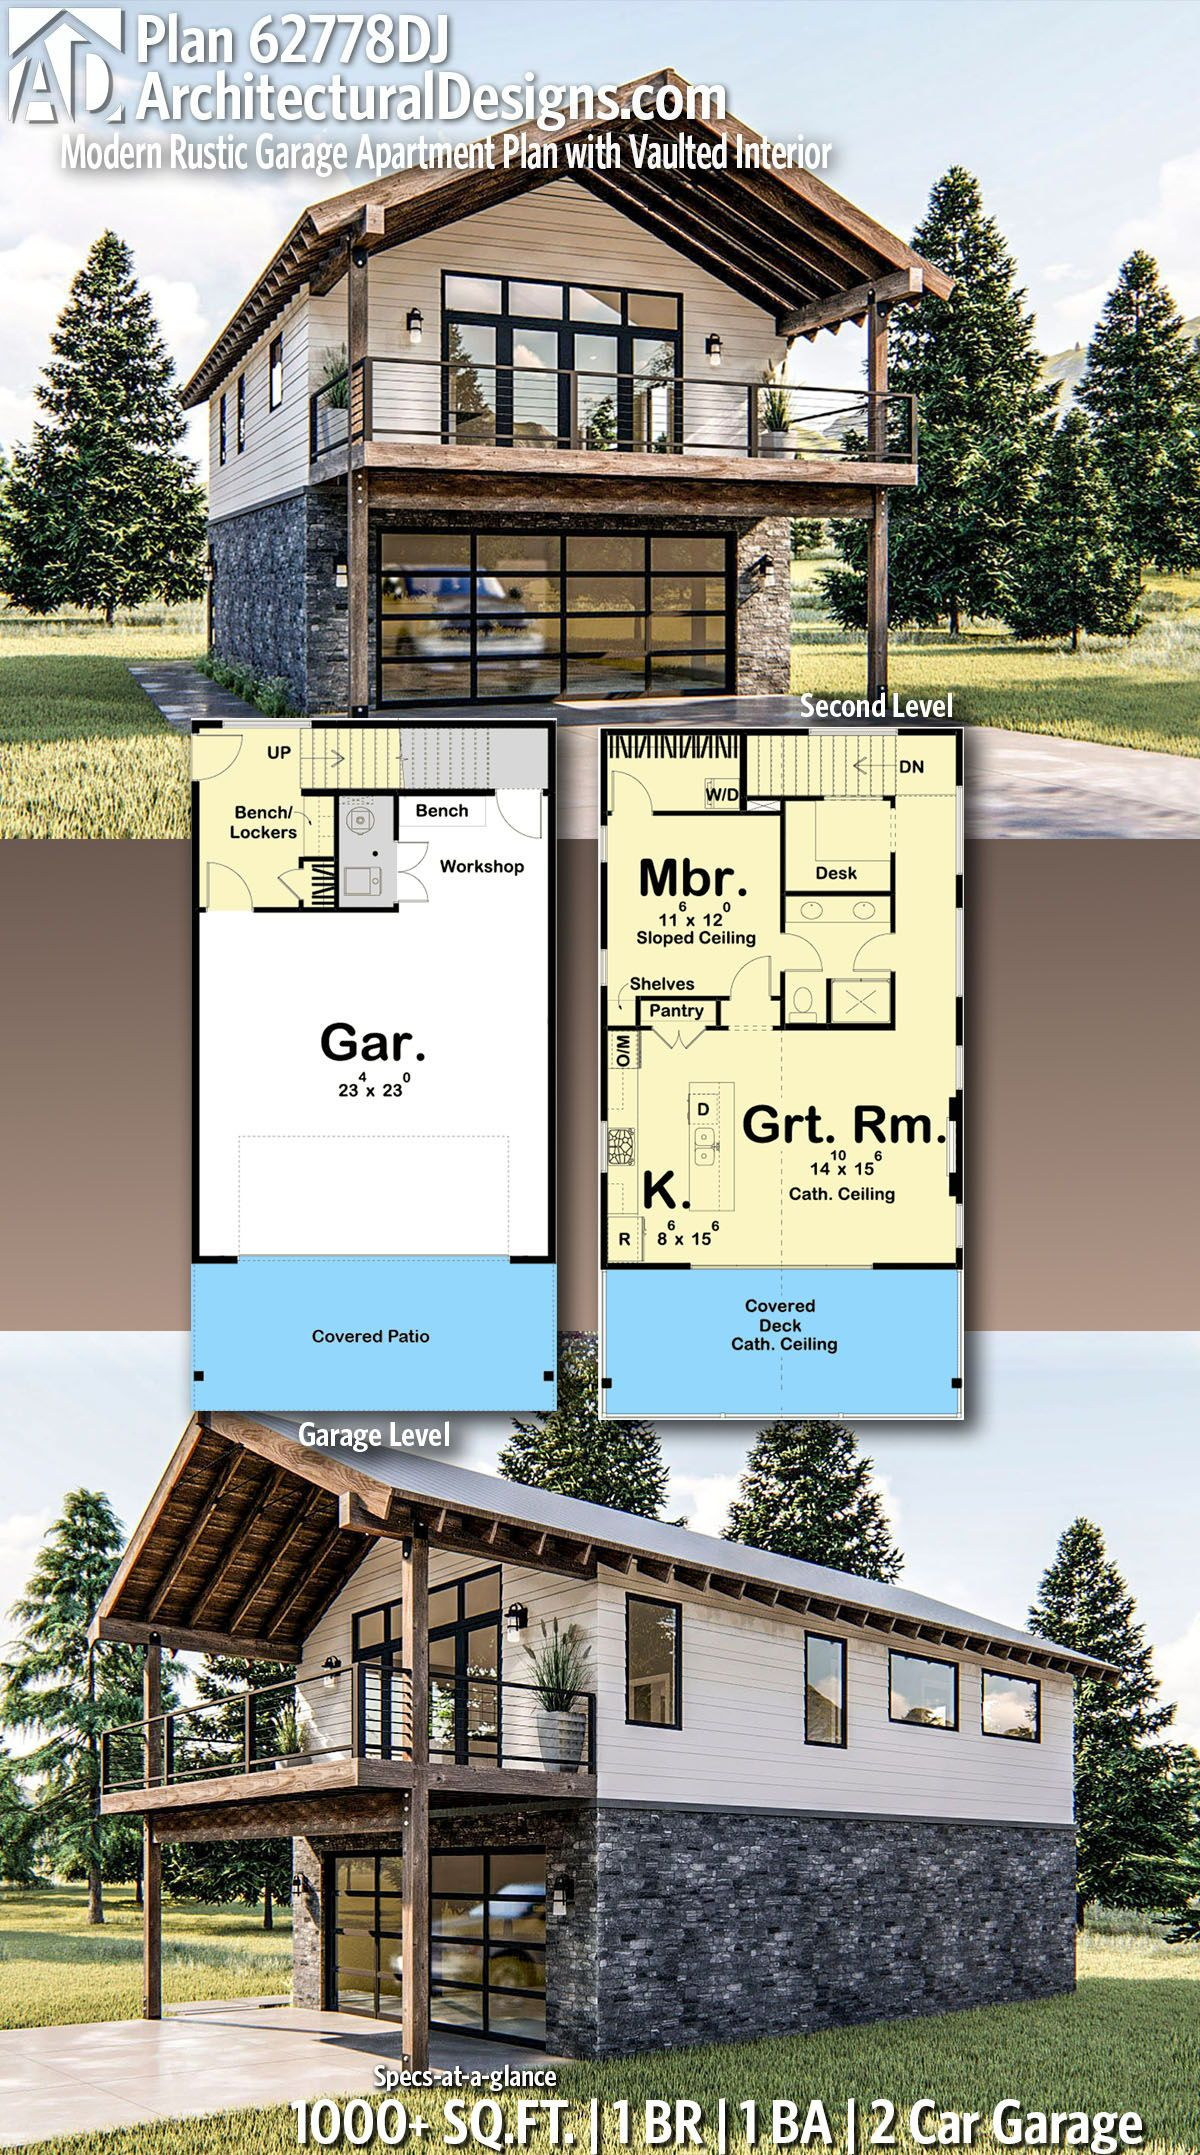 Plan 62778dj Modern Rustic Garage Apartment Plan With Vaulted